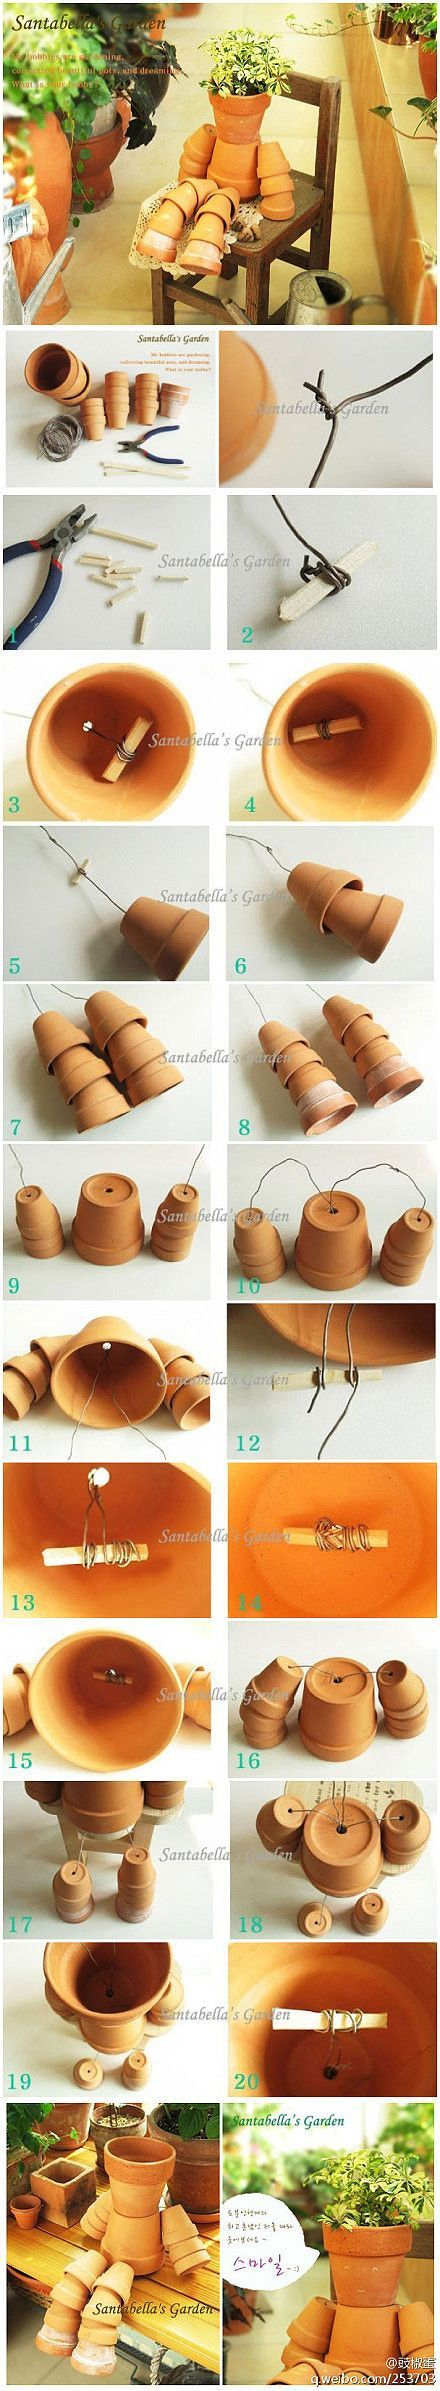 DIY Flowerpot Villain DIY Projects | UsefulDIY.com